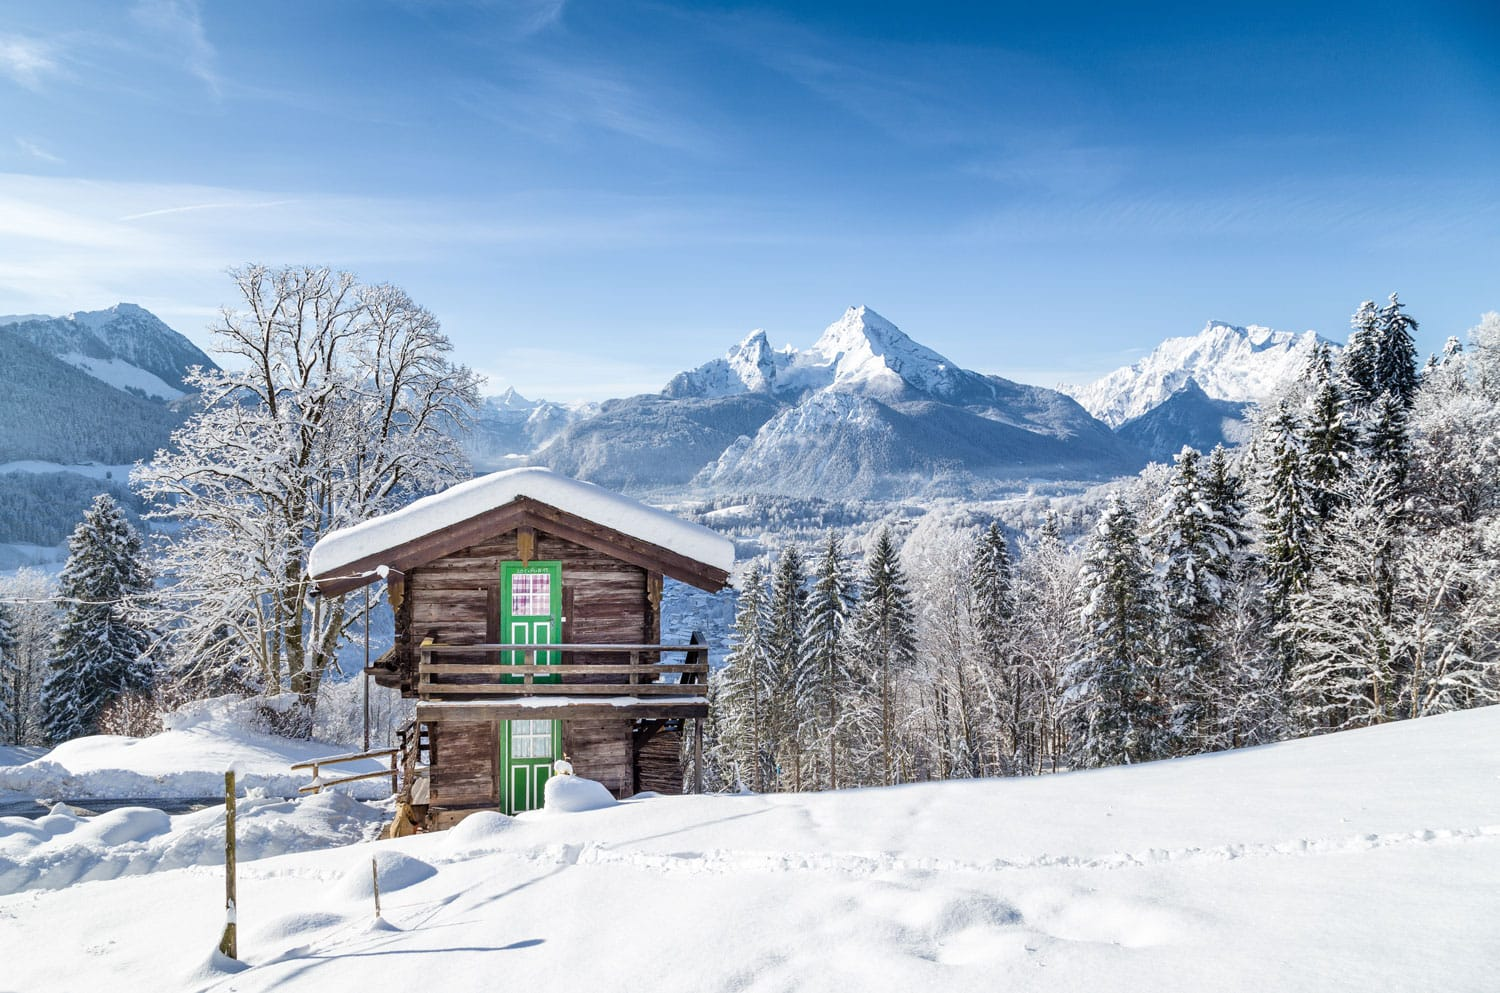 Panoramic view of beautiful white winter wonderland mountain scenery in the Alps with traditional old wooden mountain chalet on a cold sunny day with blue sky and clouds